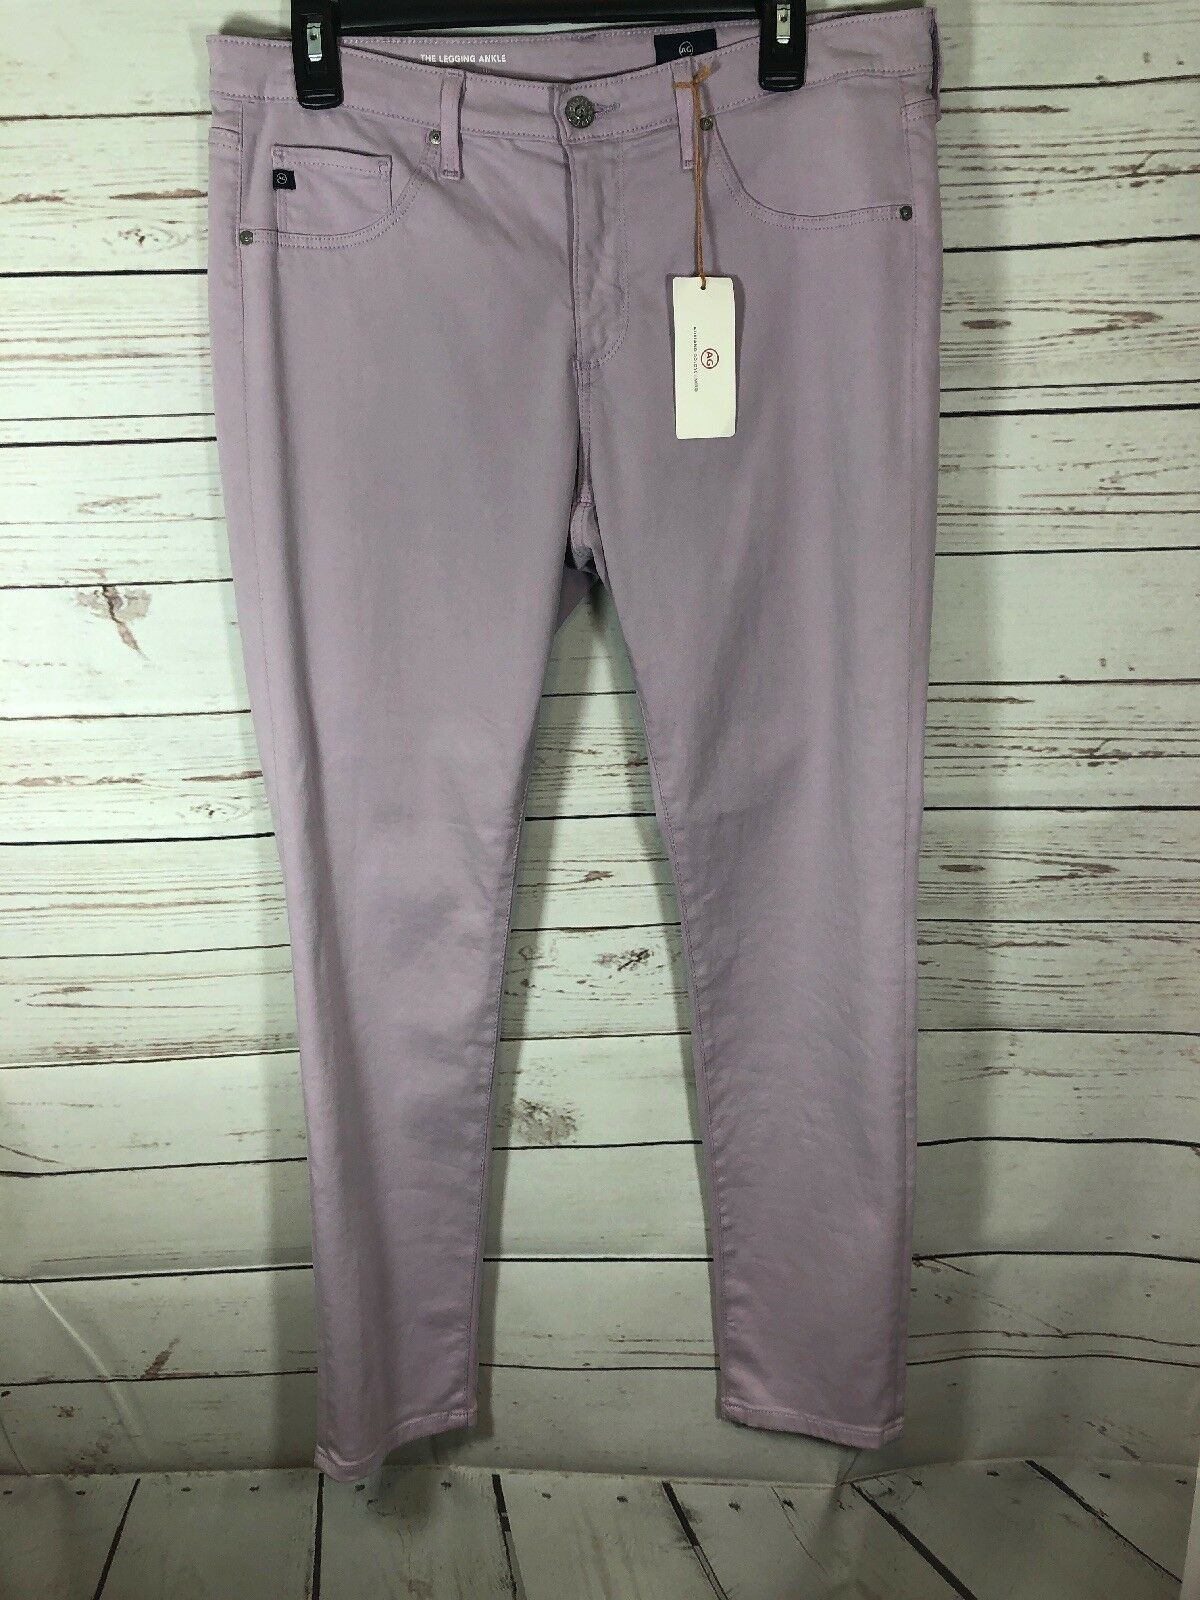 NWT AG Adriano goldschmied THE LEGGING ANKLE SUPER SKINNY Purple ANKLE 31